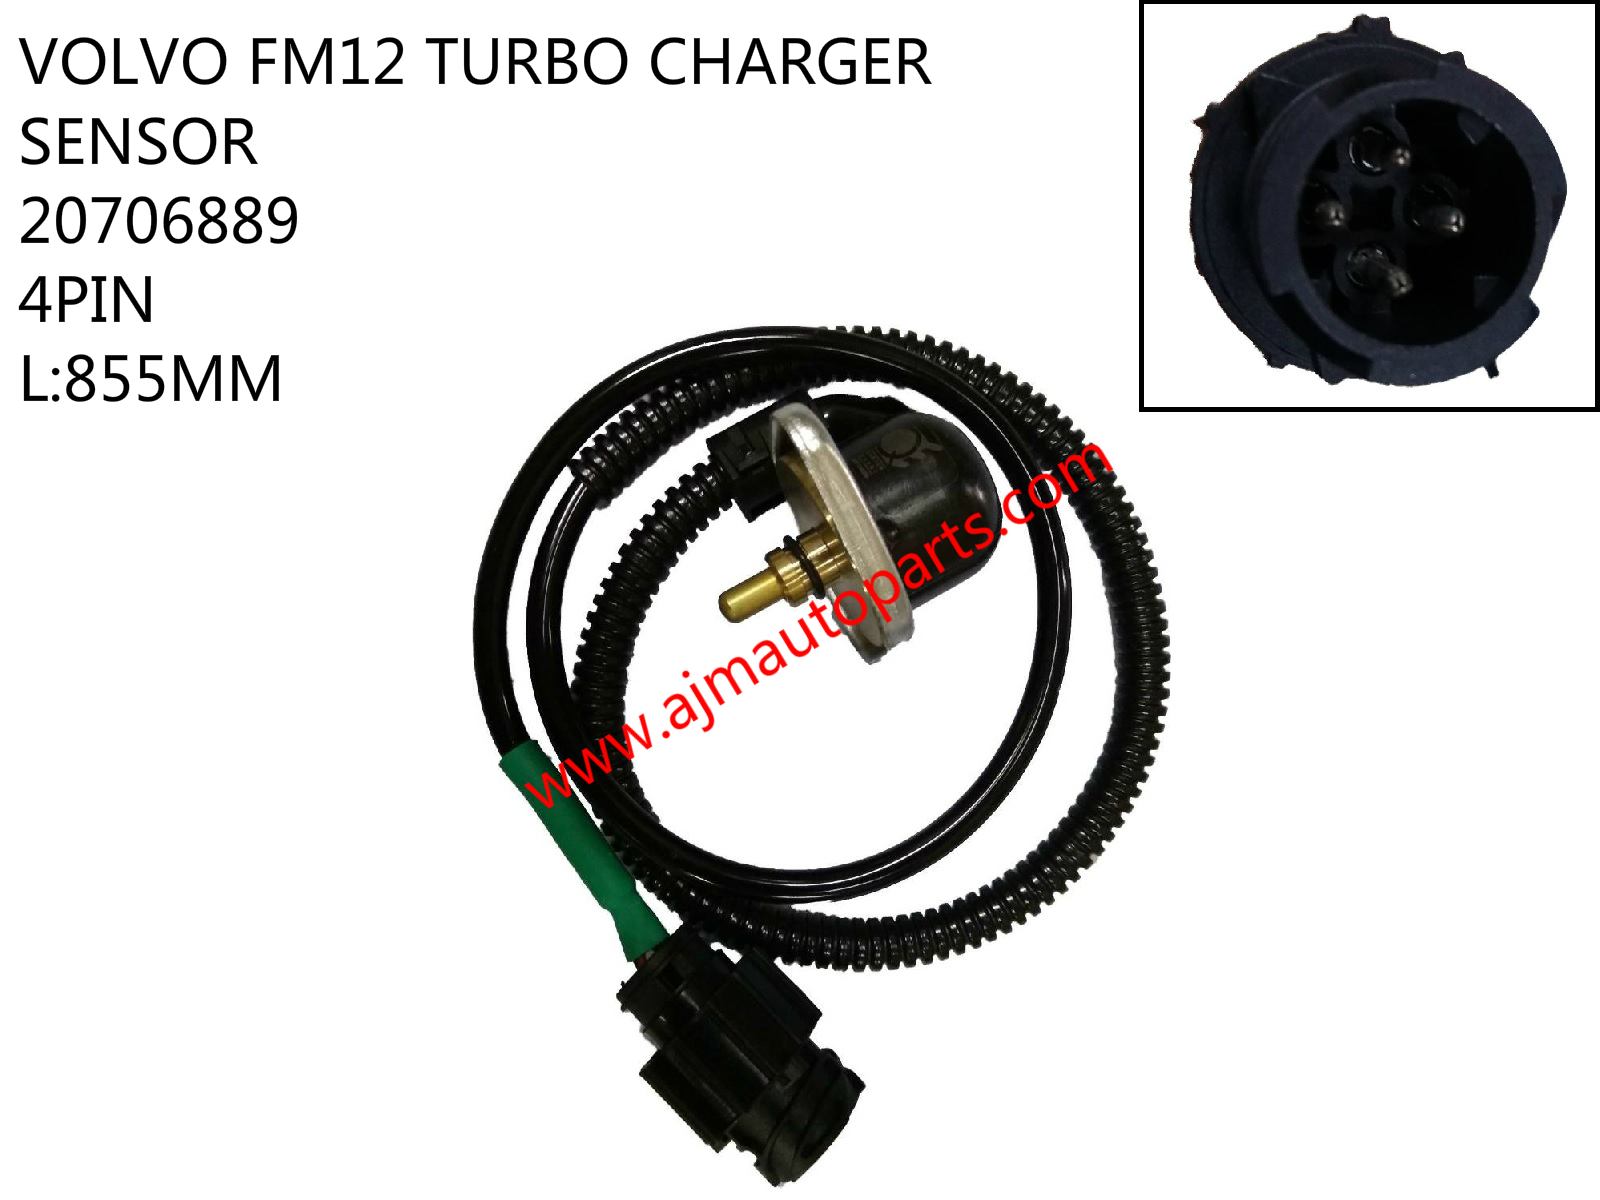 VOLVO FM12 TURBO CHARGER SENSOR-20706889_